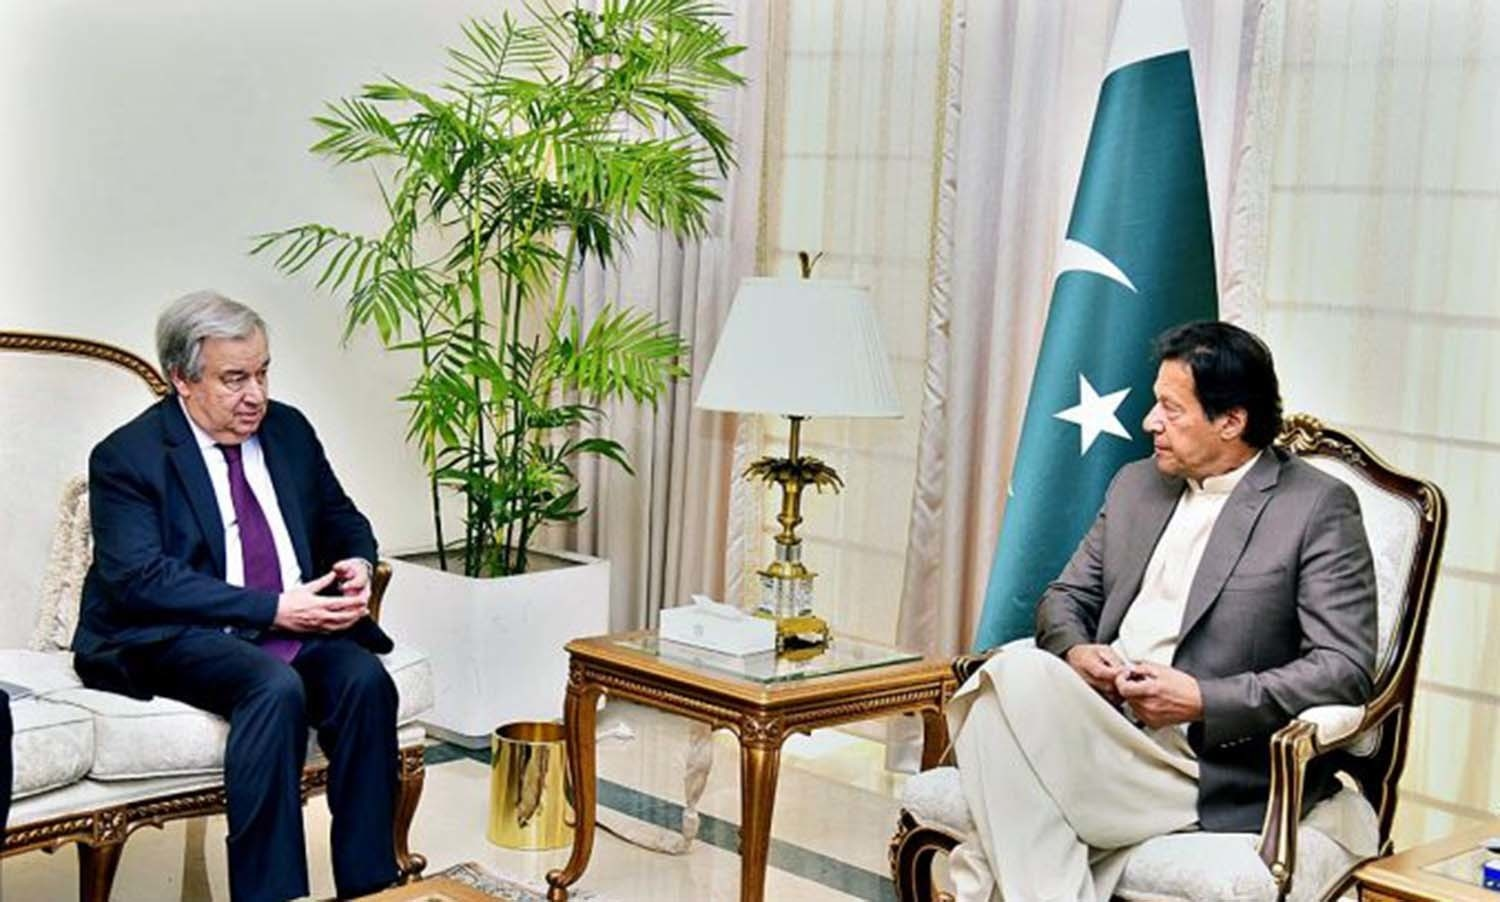 The UN chief also met with Prime Minister Imran Khan at his office. — APP